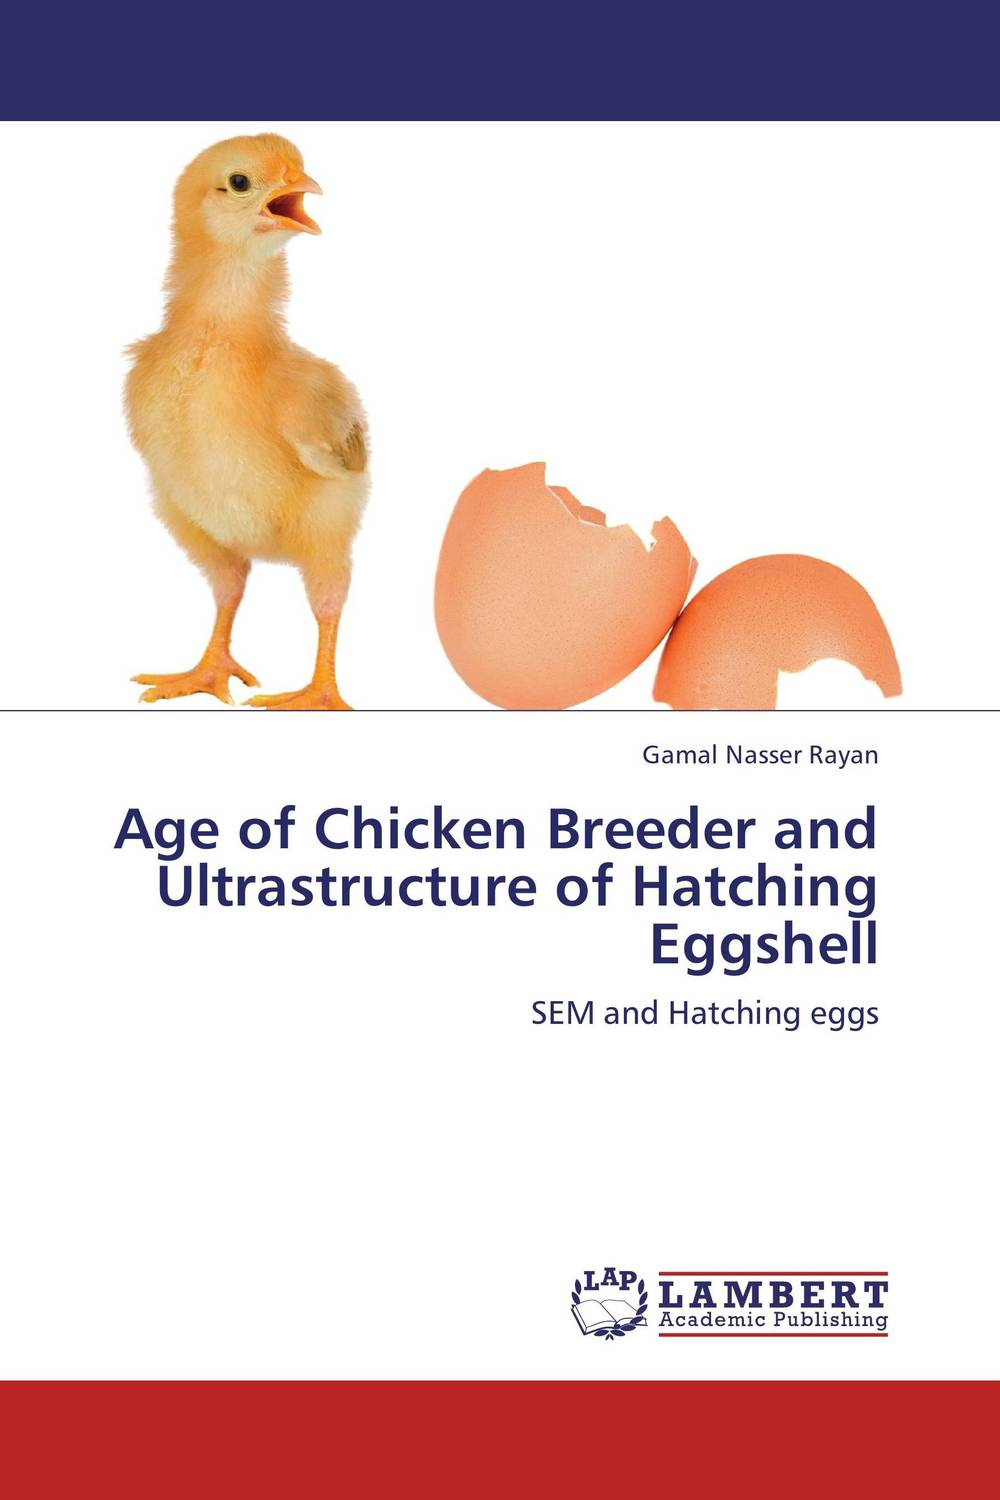 Age of Chicken Breeder and Ultrastructure of Hatching Eggshell 1 piece lowest price full automatic digital display poultry egg incubator mini 48 chicken eggs hatching machine